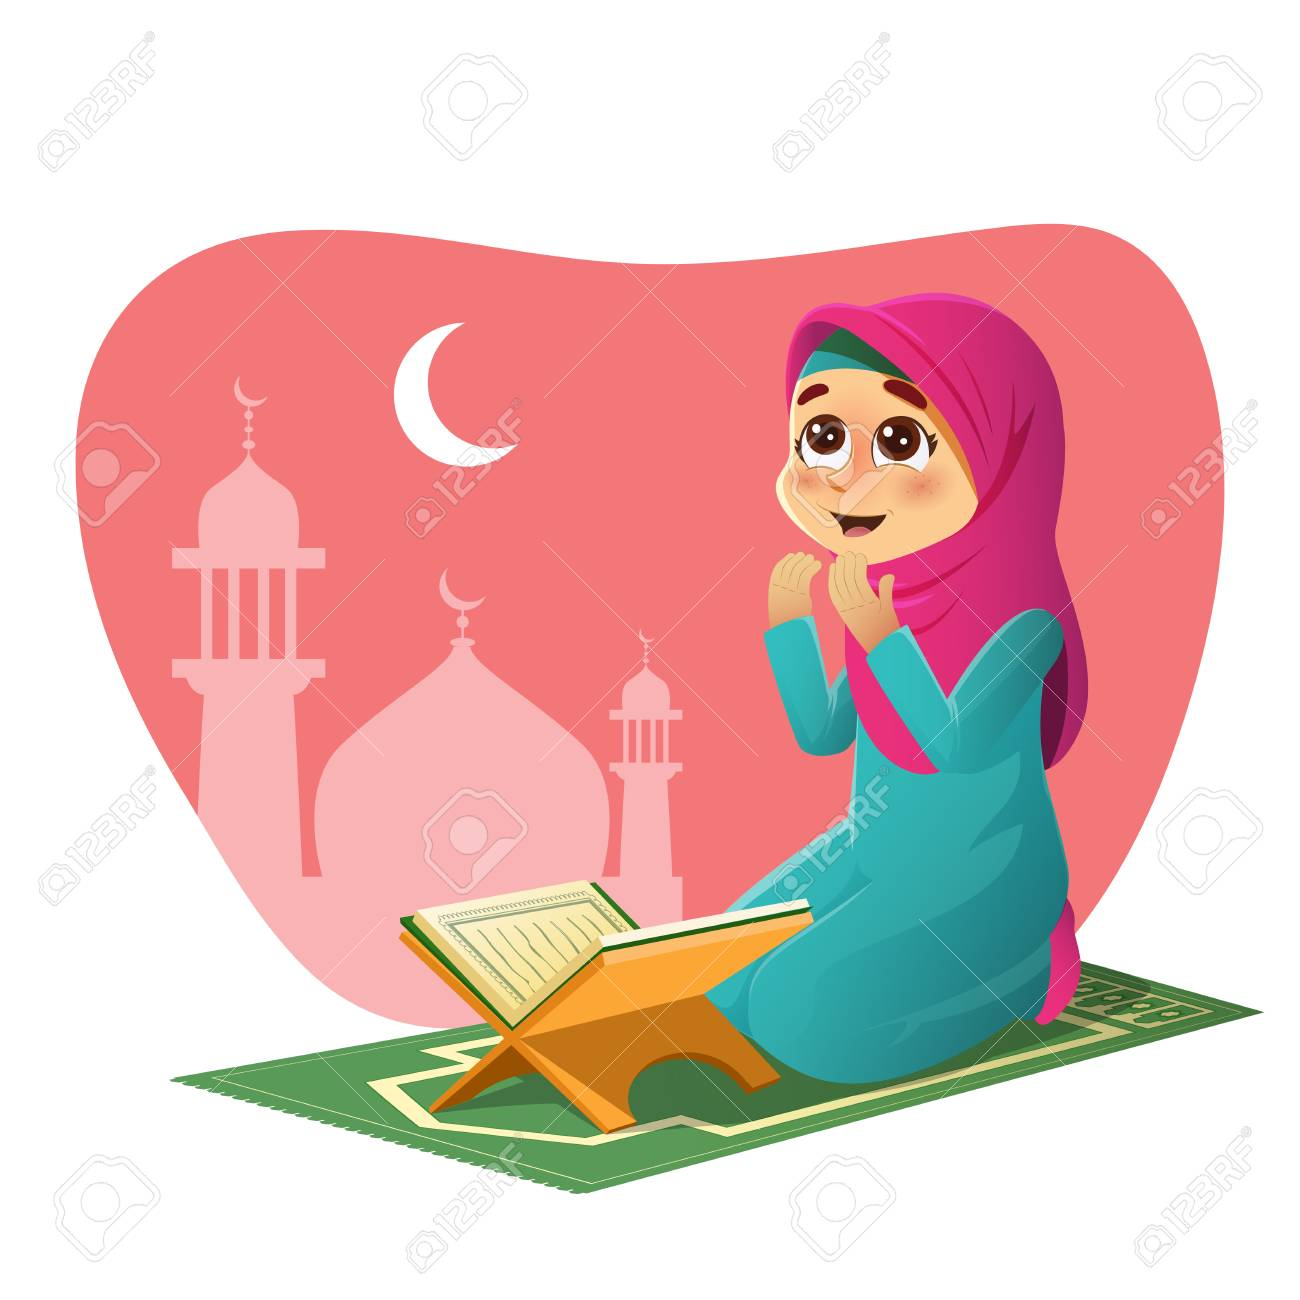 Muslim Girl Praying vector illustration.